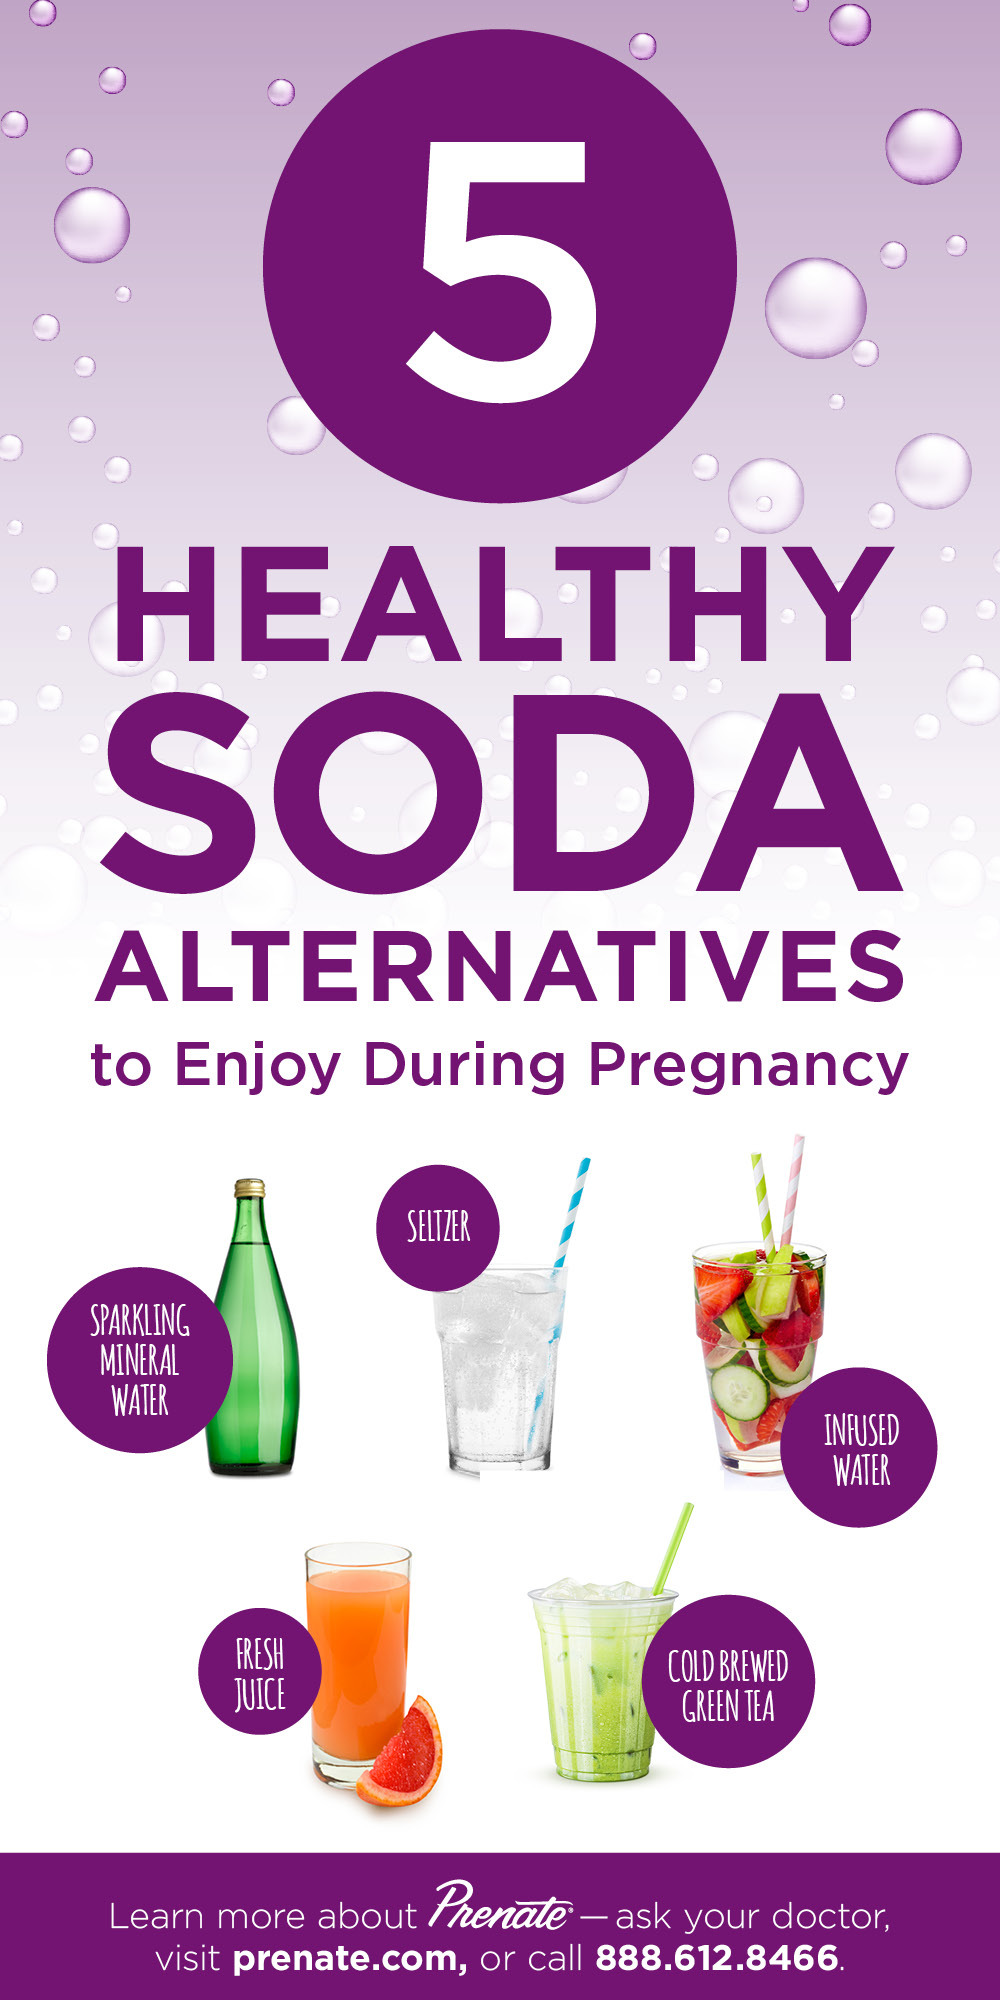 Healthy Soda Alternatives graphic